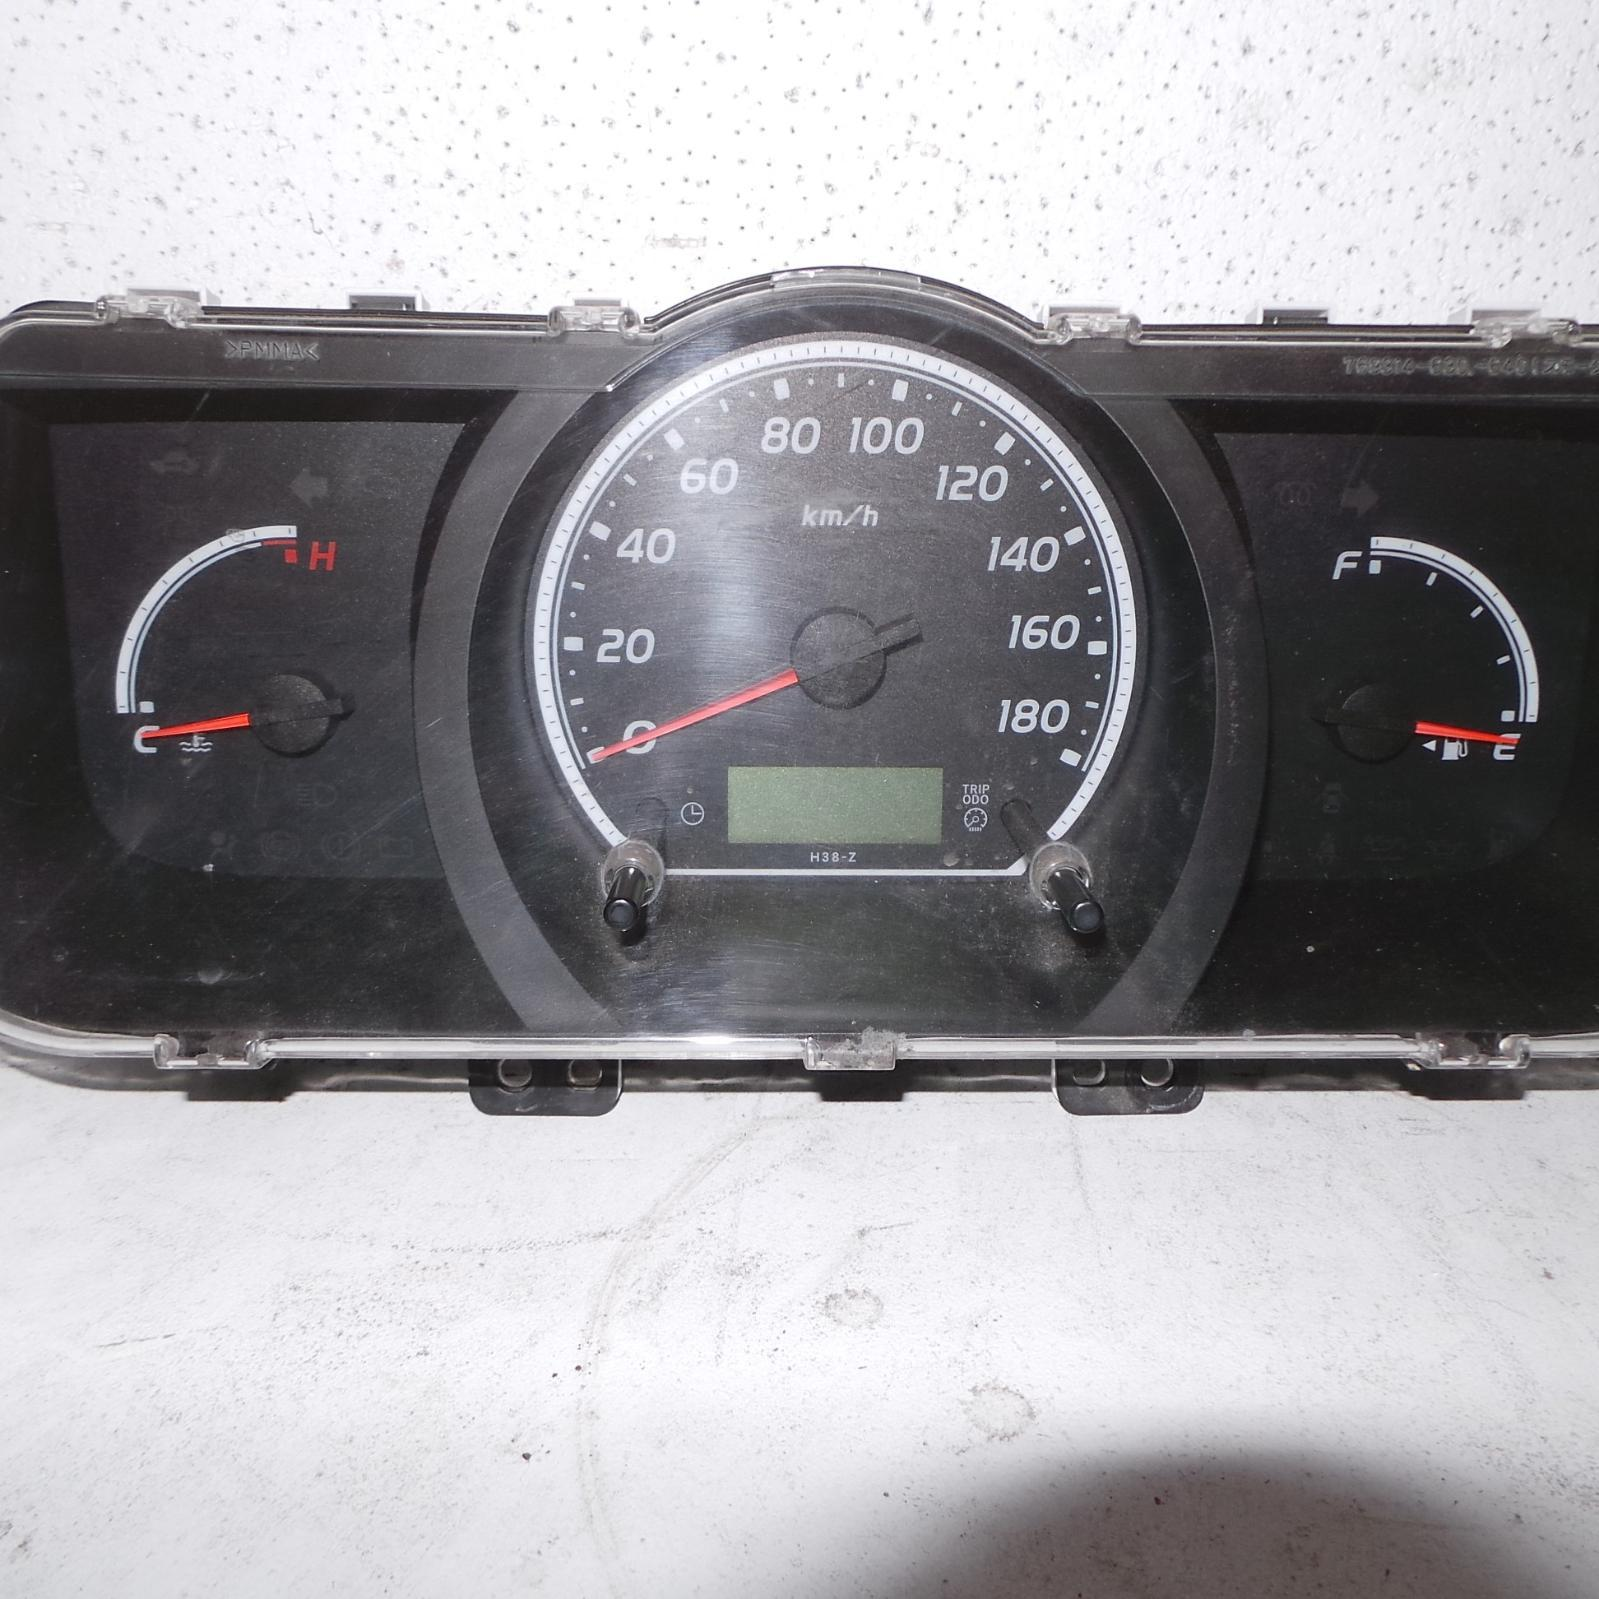 TOYOTA HIACE, Instrument Cluster, DIESEL, MANUAL T/M TYPE, KDH, 03/05-01/14